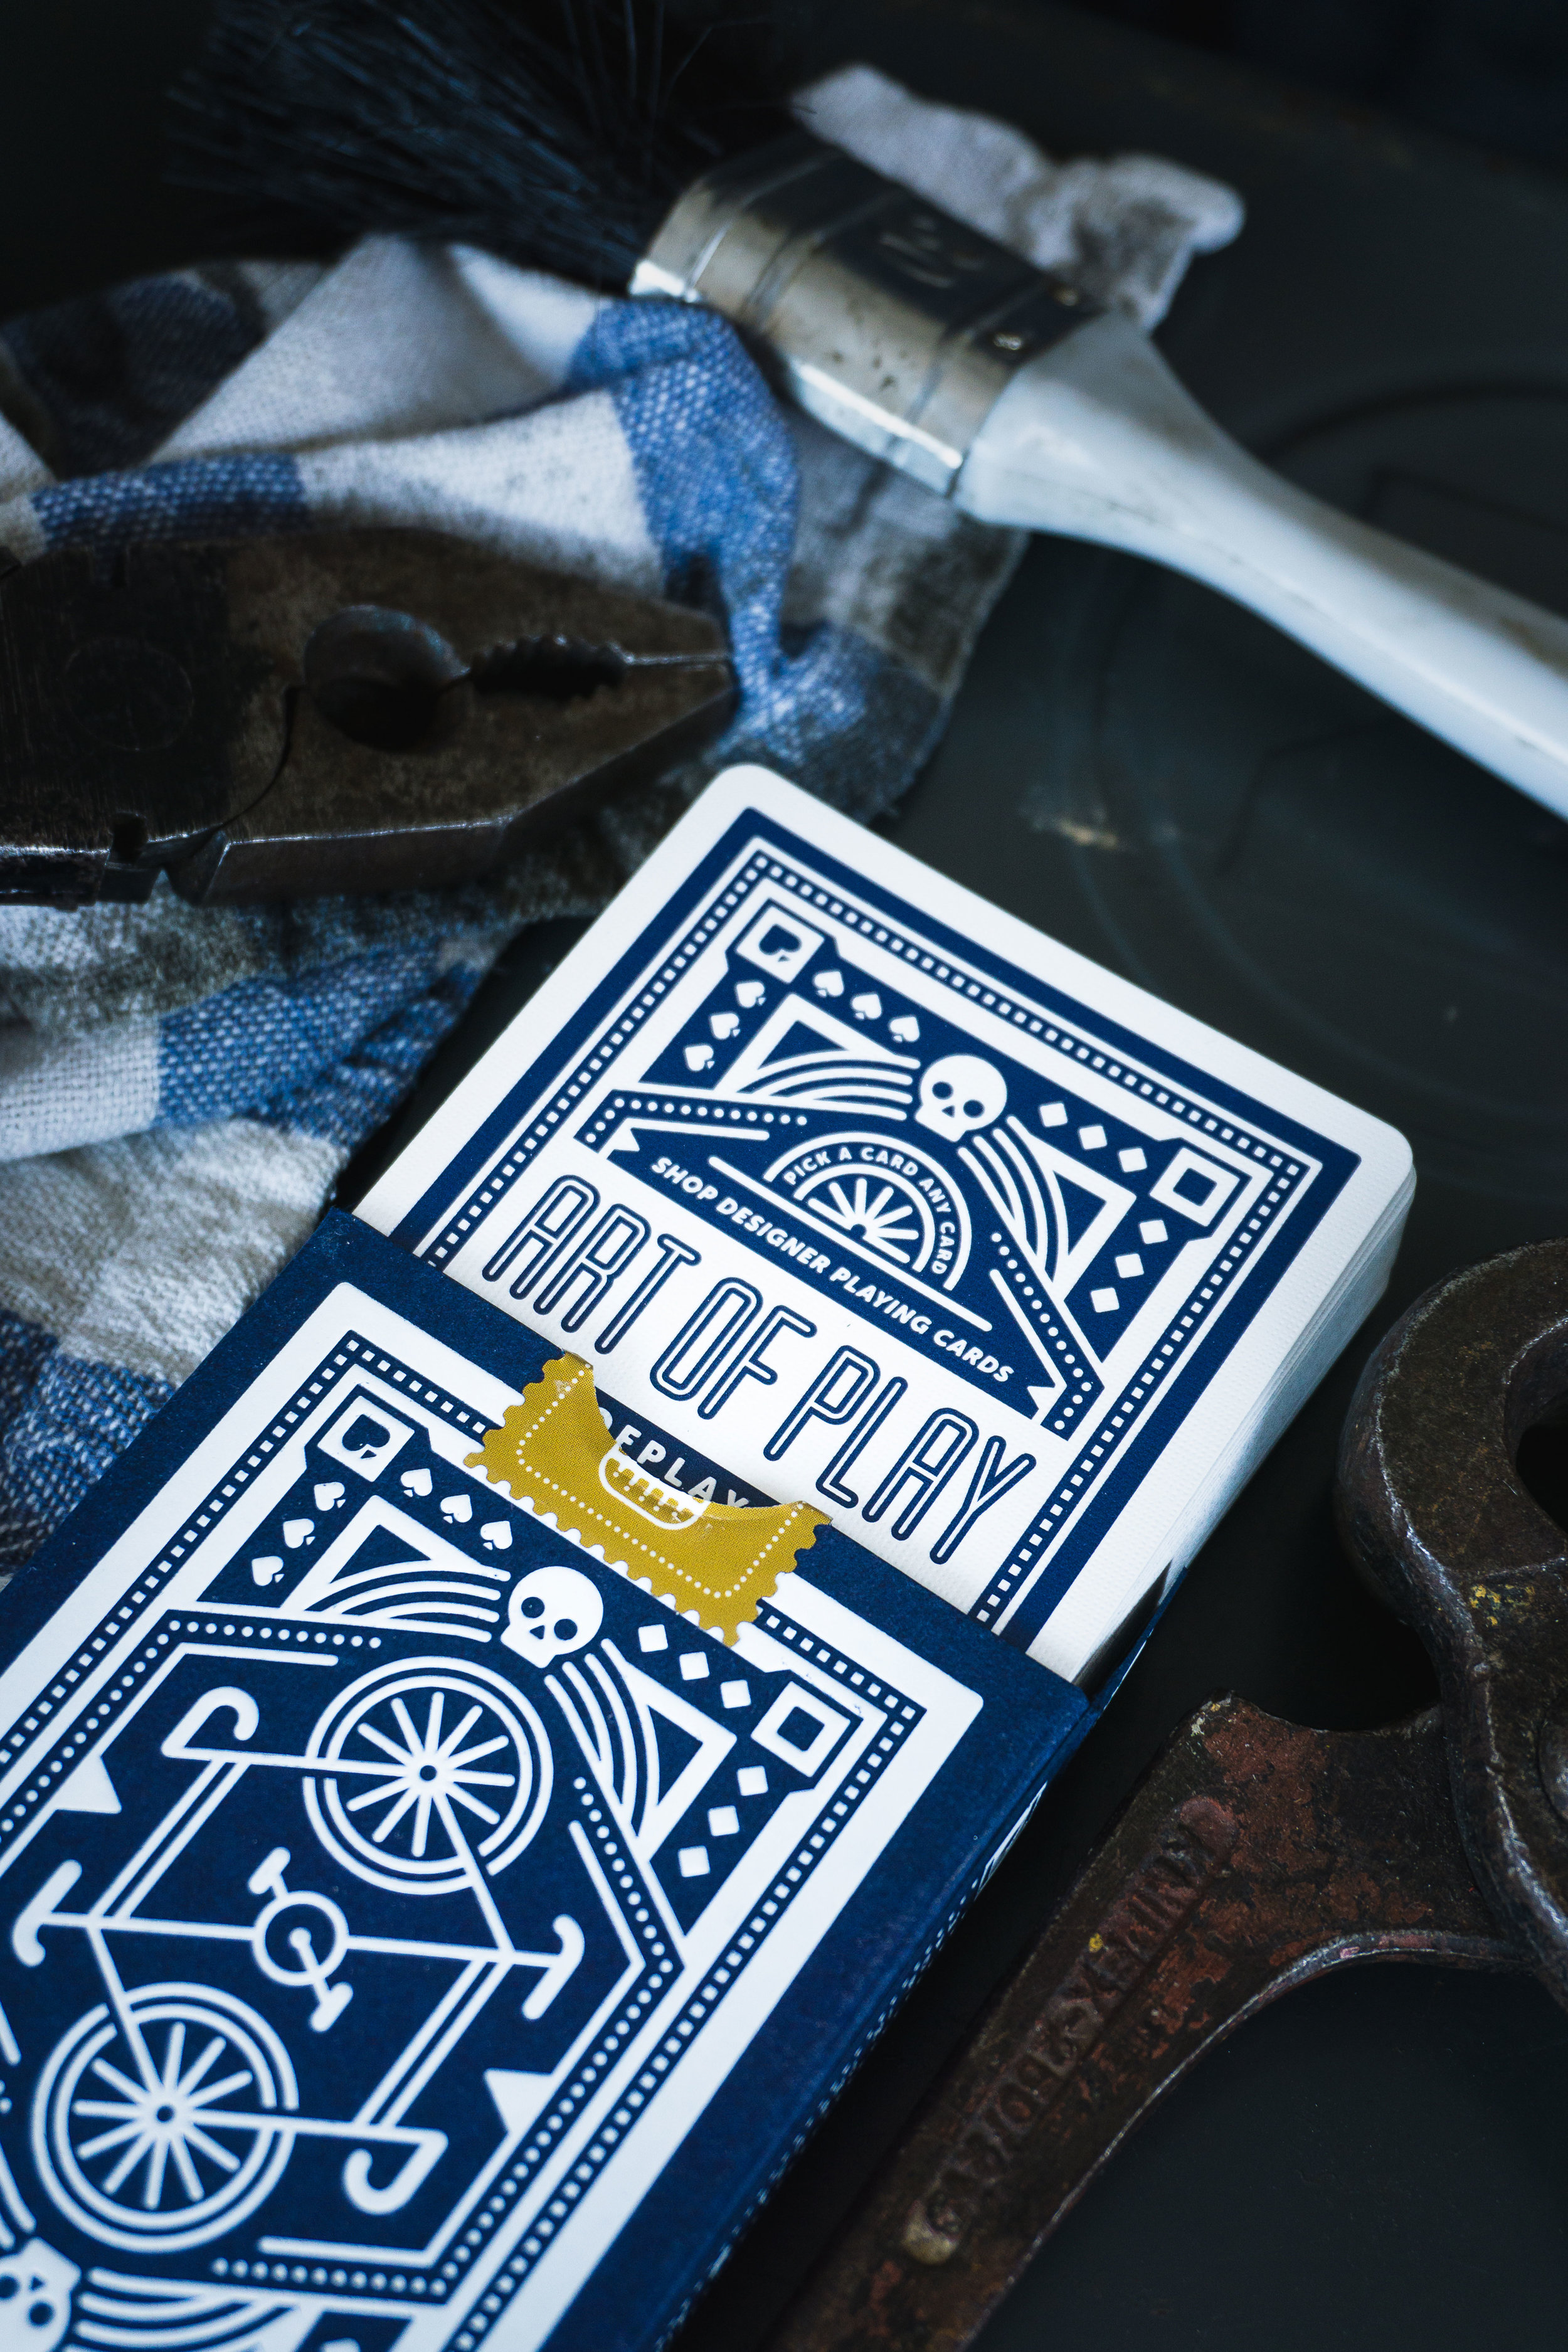 DKNG Blue Wheel Playing Cards photographed by Wonderful Mystical